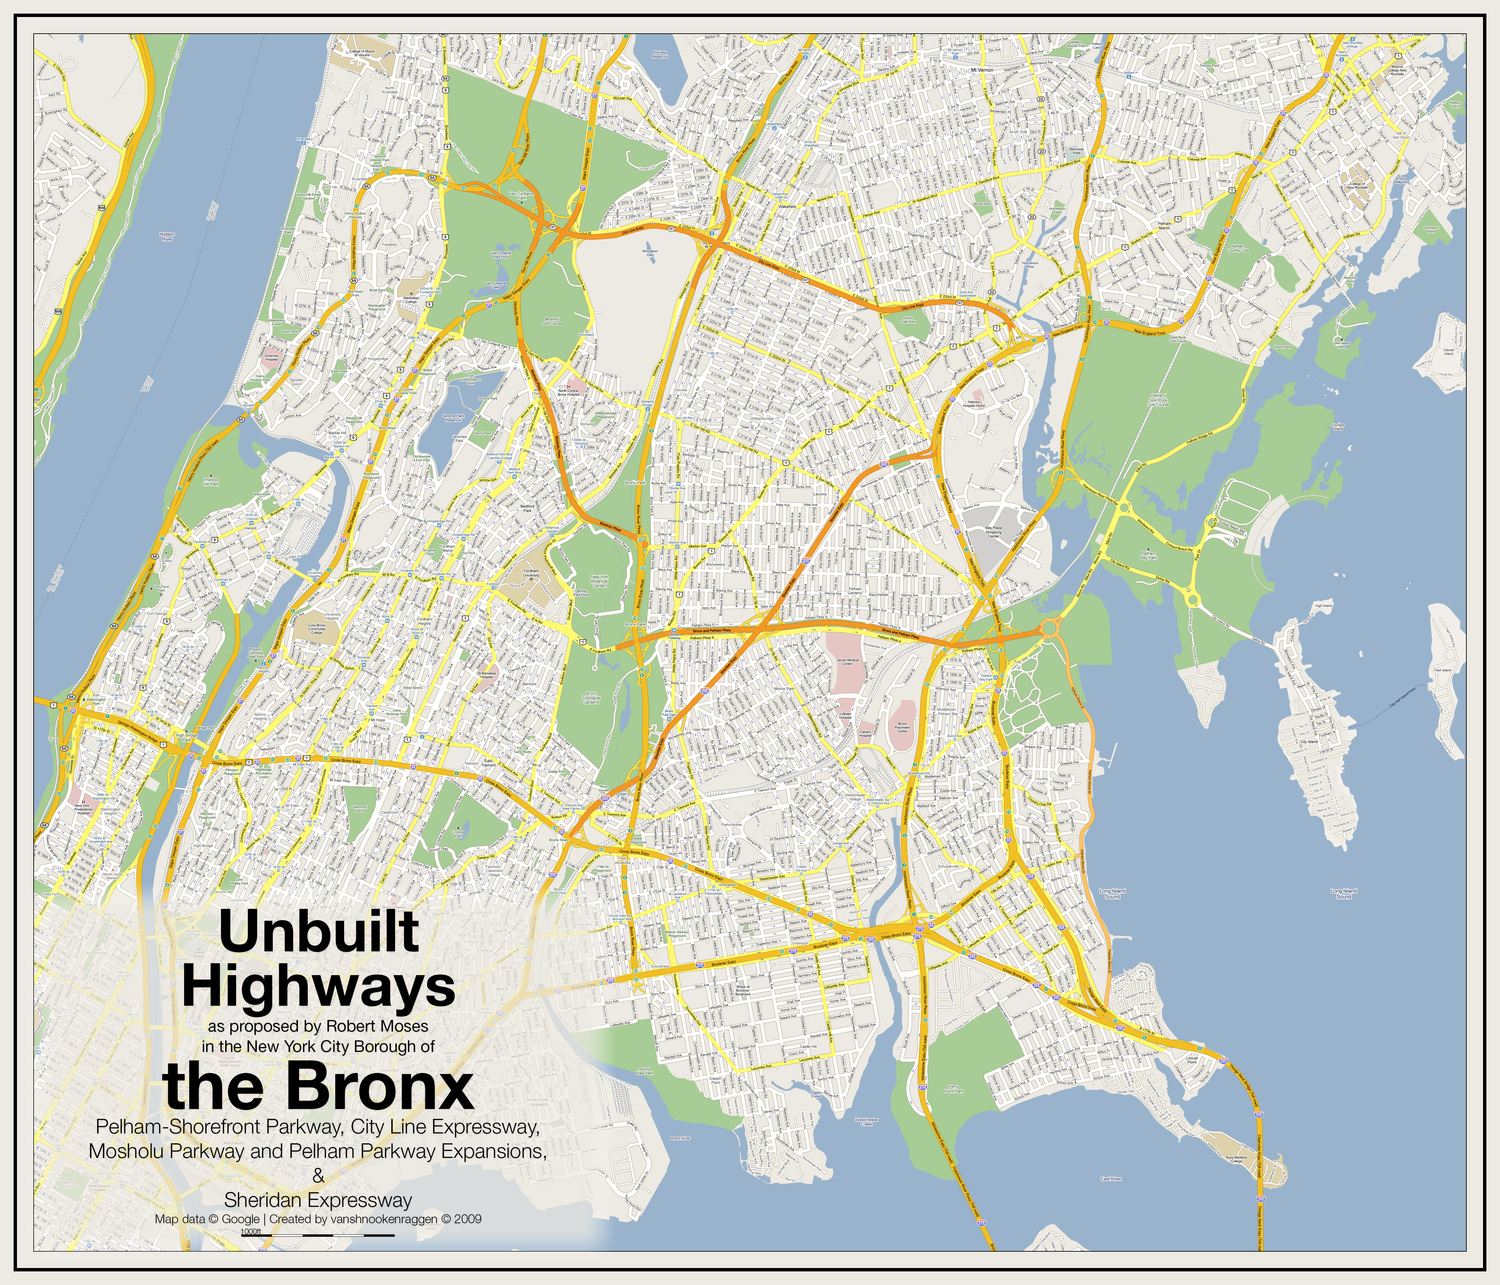 Unbuilt Highways of the Bronx | Unbuilt Highways as proposed by Robert Moses in the New York City Borough of the Bronx: Pelham-Shorefront Parkway, City Line Expressway, Mosholu Parkway and Pelham Parkway Expansions, & Sheridan Expressway Map data © Google | Created by vanshnookenraggen © 2009